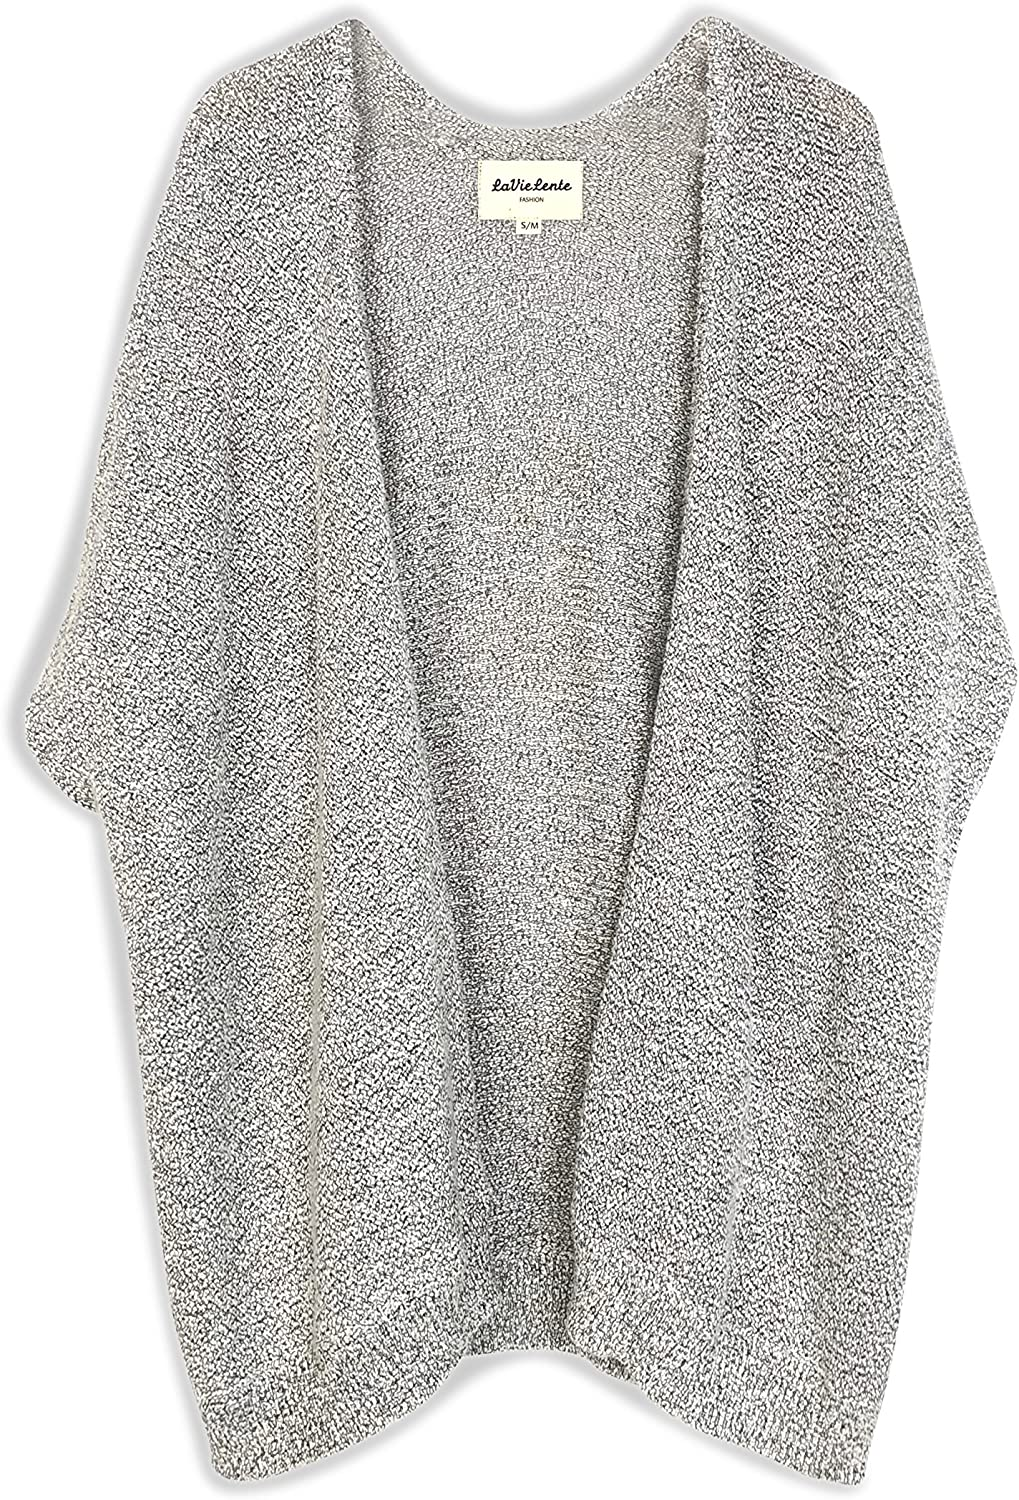 LaVieLente Women's Sleeveless Ultra Soft Oversized Iconic Knitted Sweater Cape